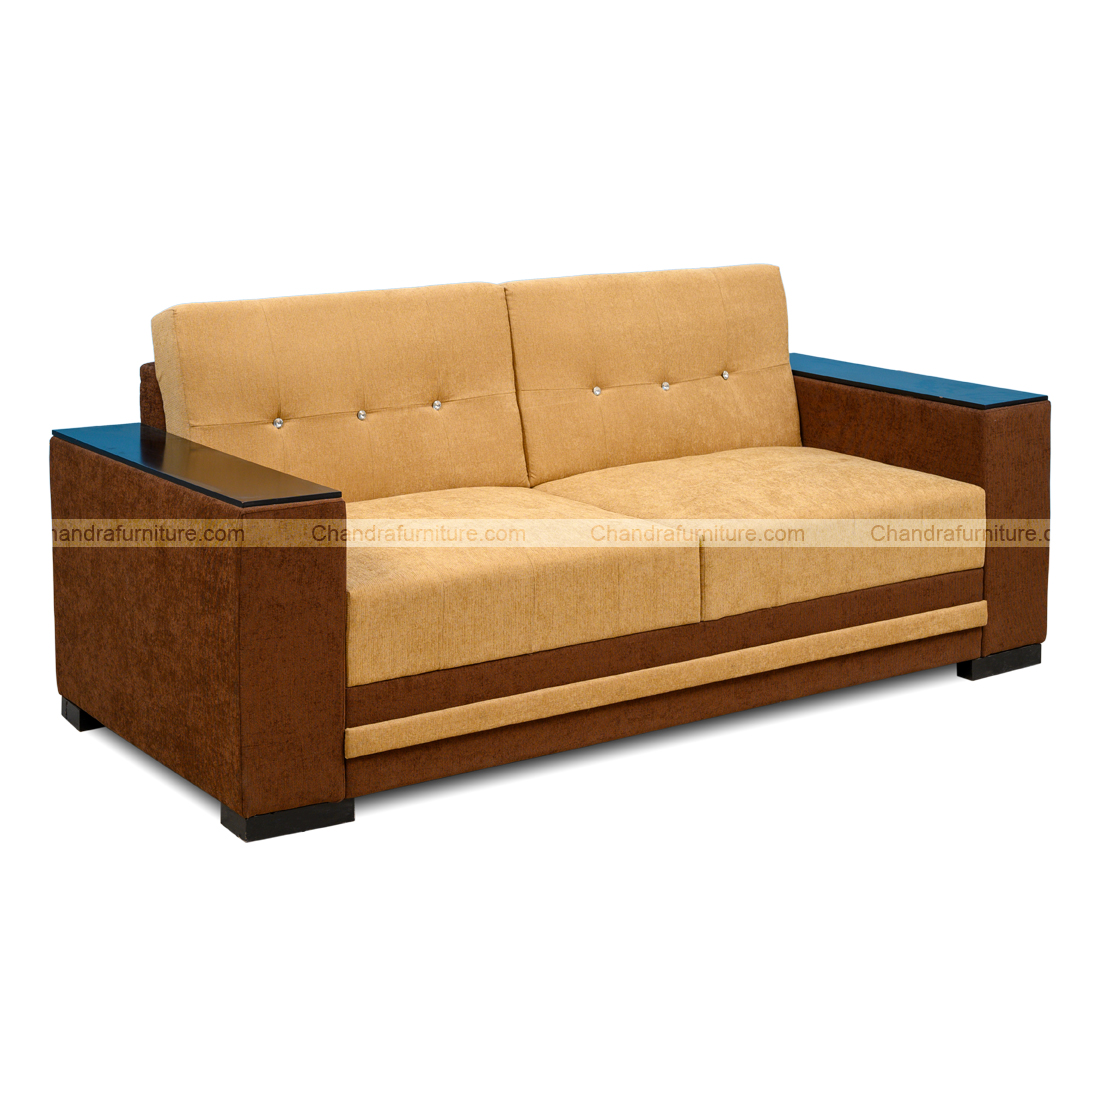 "CHANDRA FURNITURE SOFA SET ""MAGNA"""